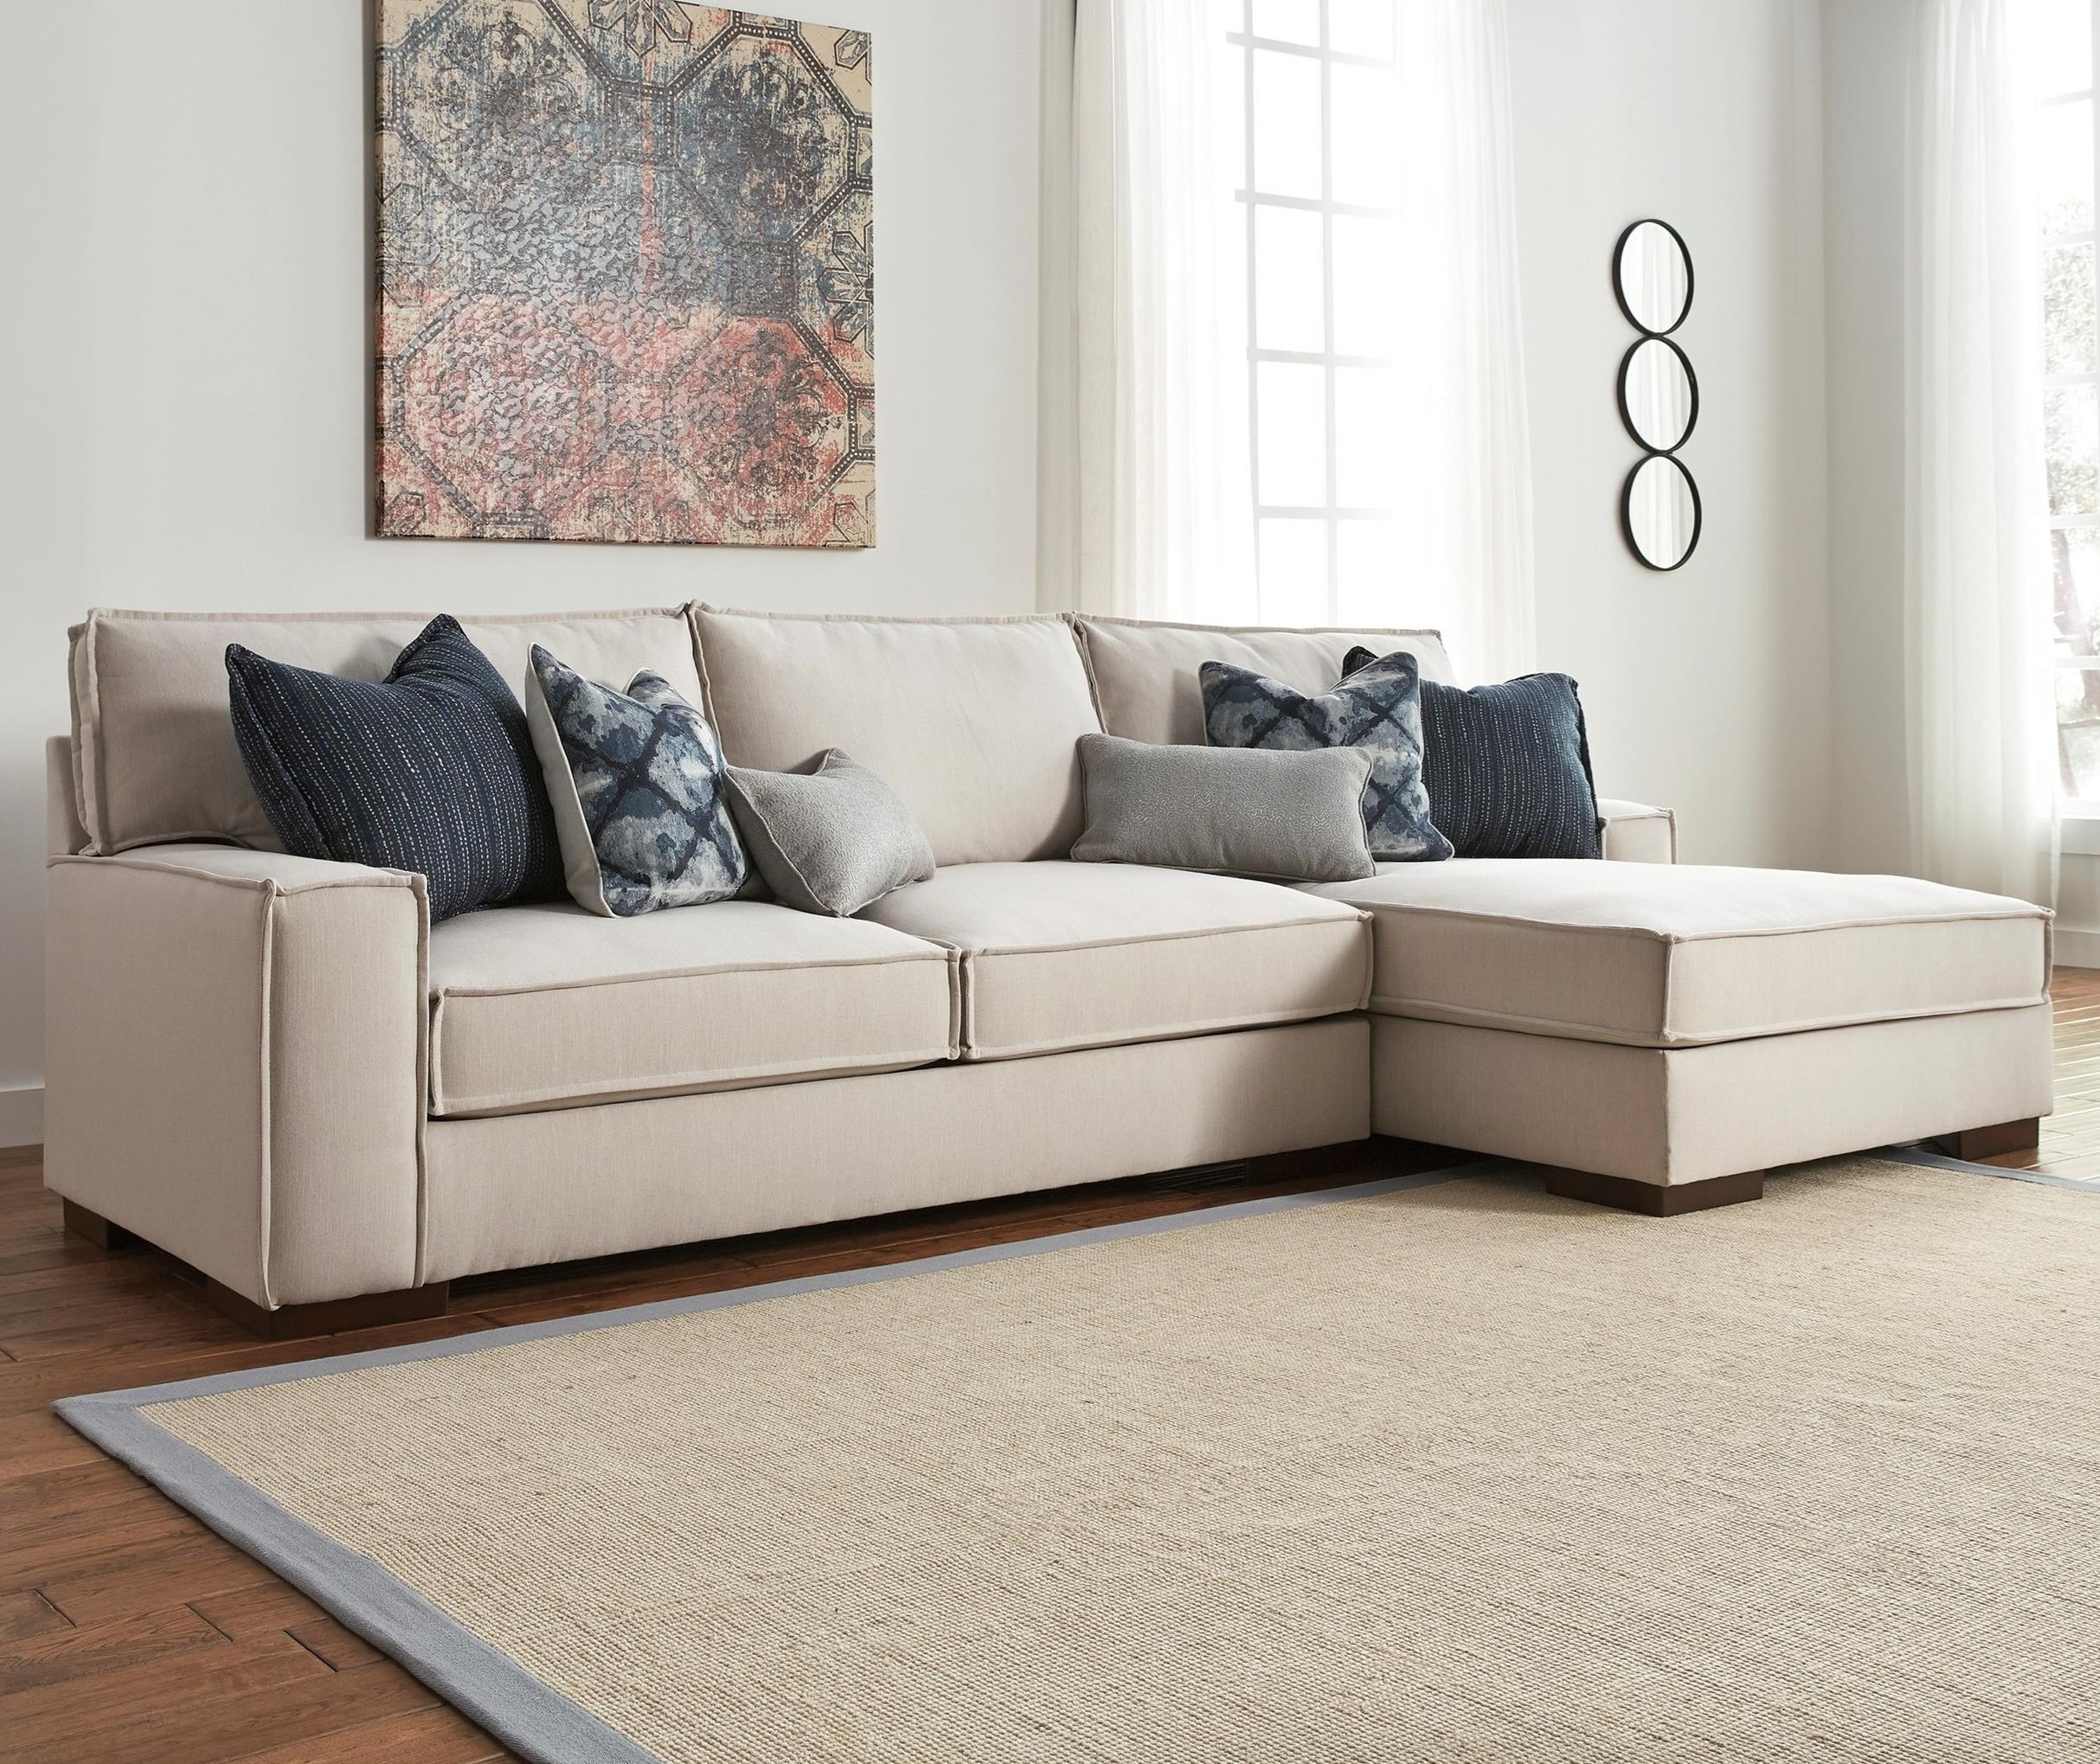 Benchcraft Kendleton Modern 2 Piece Sectional With Right Chaise And  UltraPlush Seat Cushions   Zaku0027s Fine Furniture   Sectional Sofas